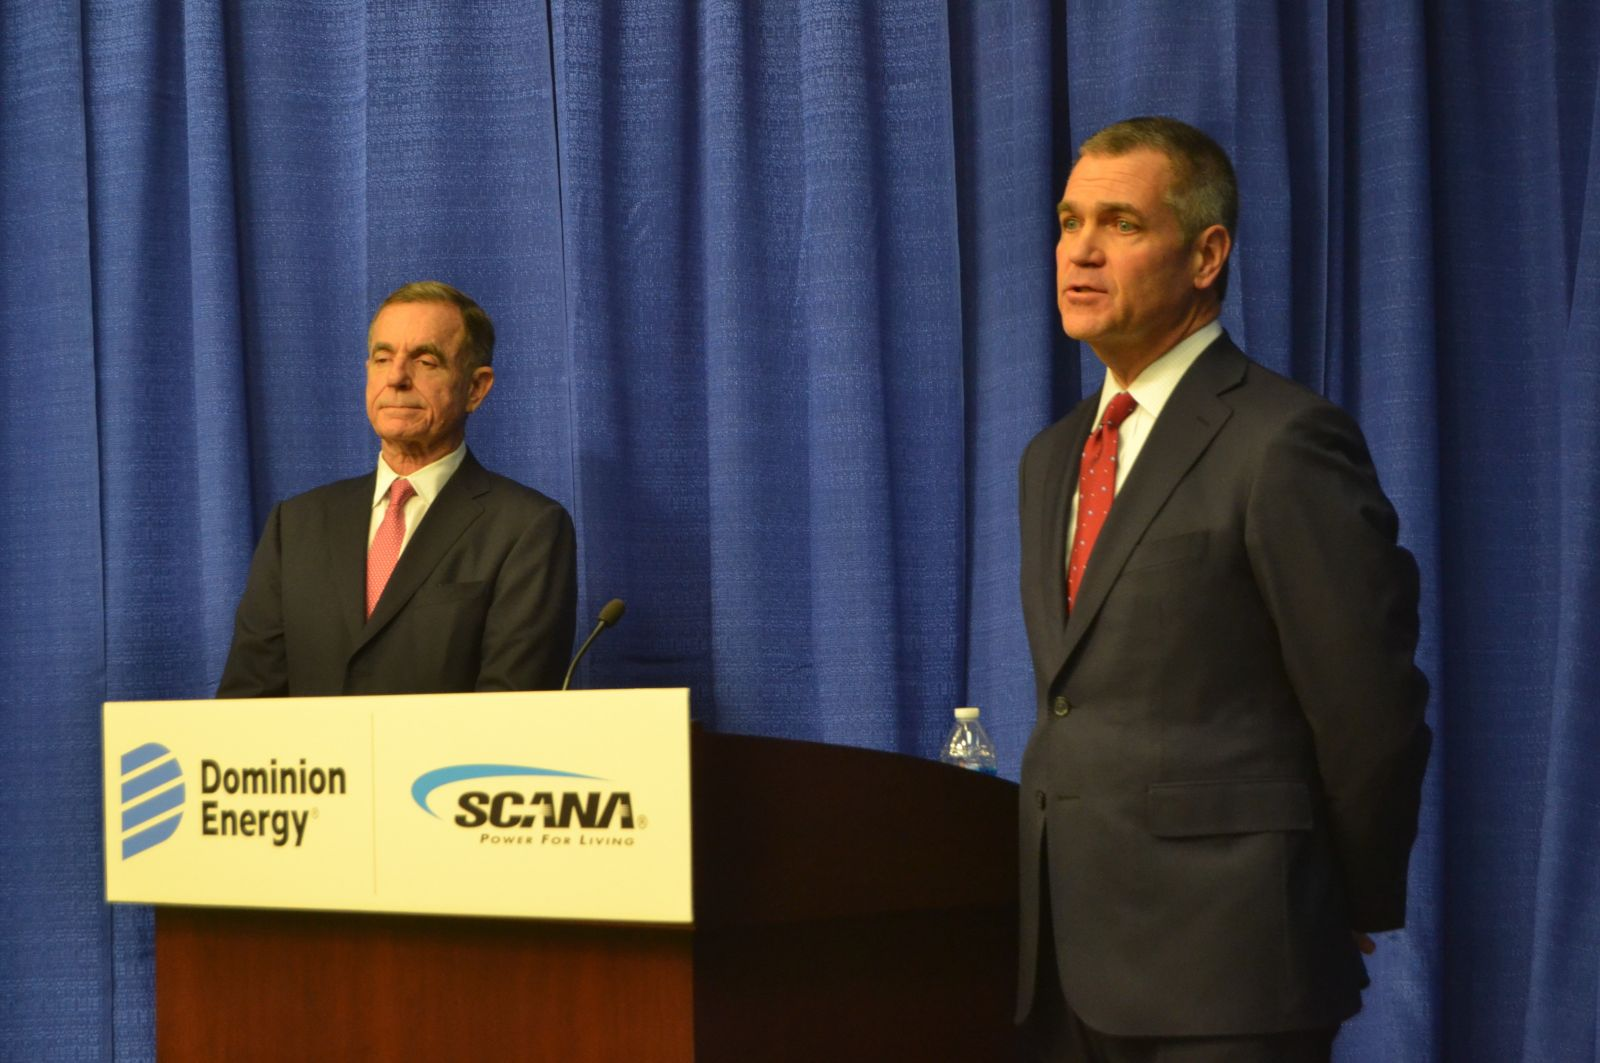 Dominion CEO Tom Farrell (left) and SCANA CEO Jimmy Addison discuss Dominion's proposed acquisition of SCANA. (Photo/Travis Boland)